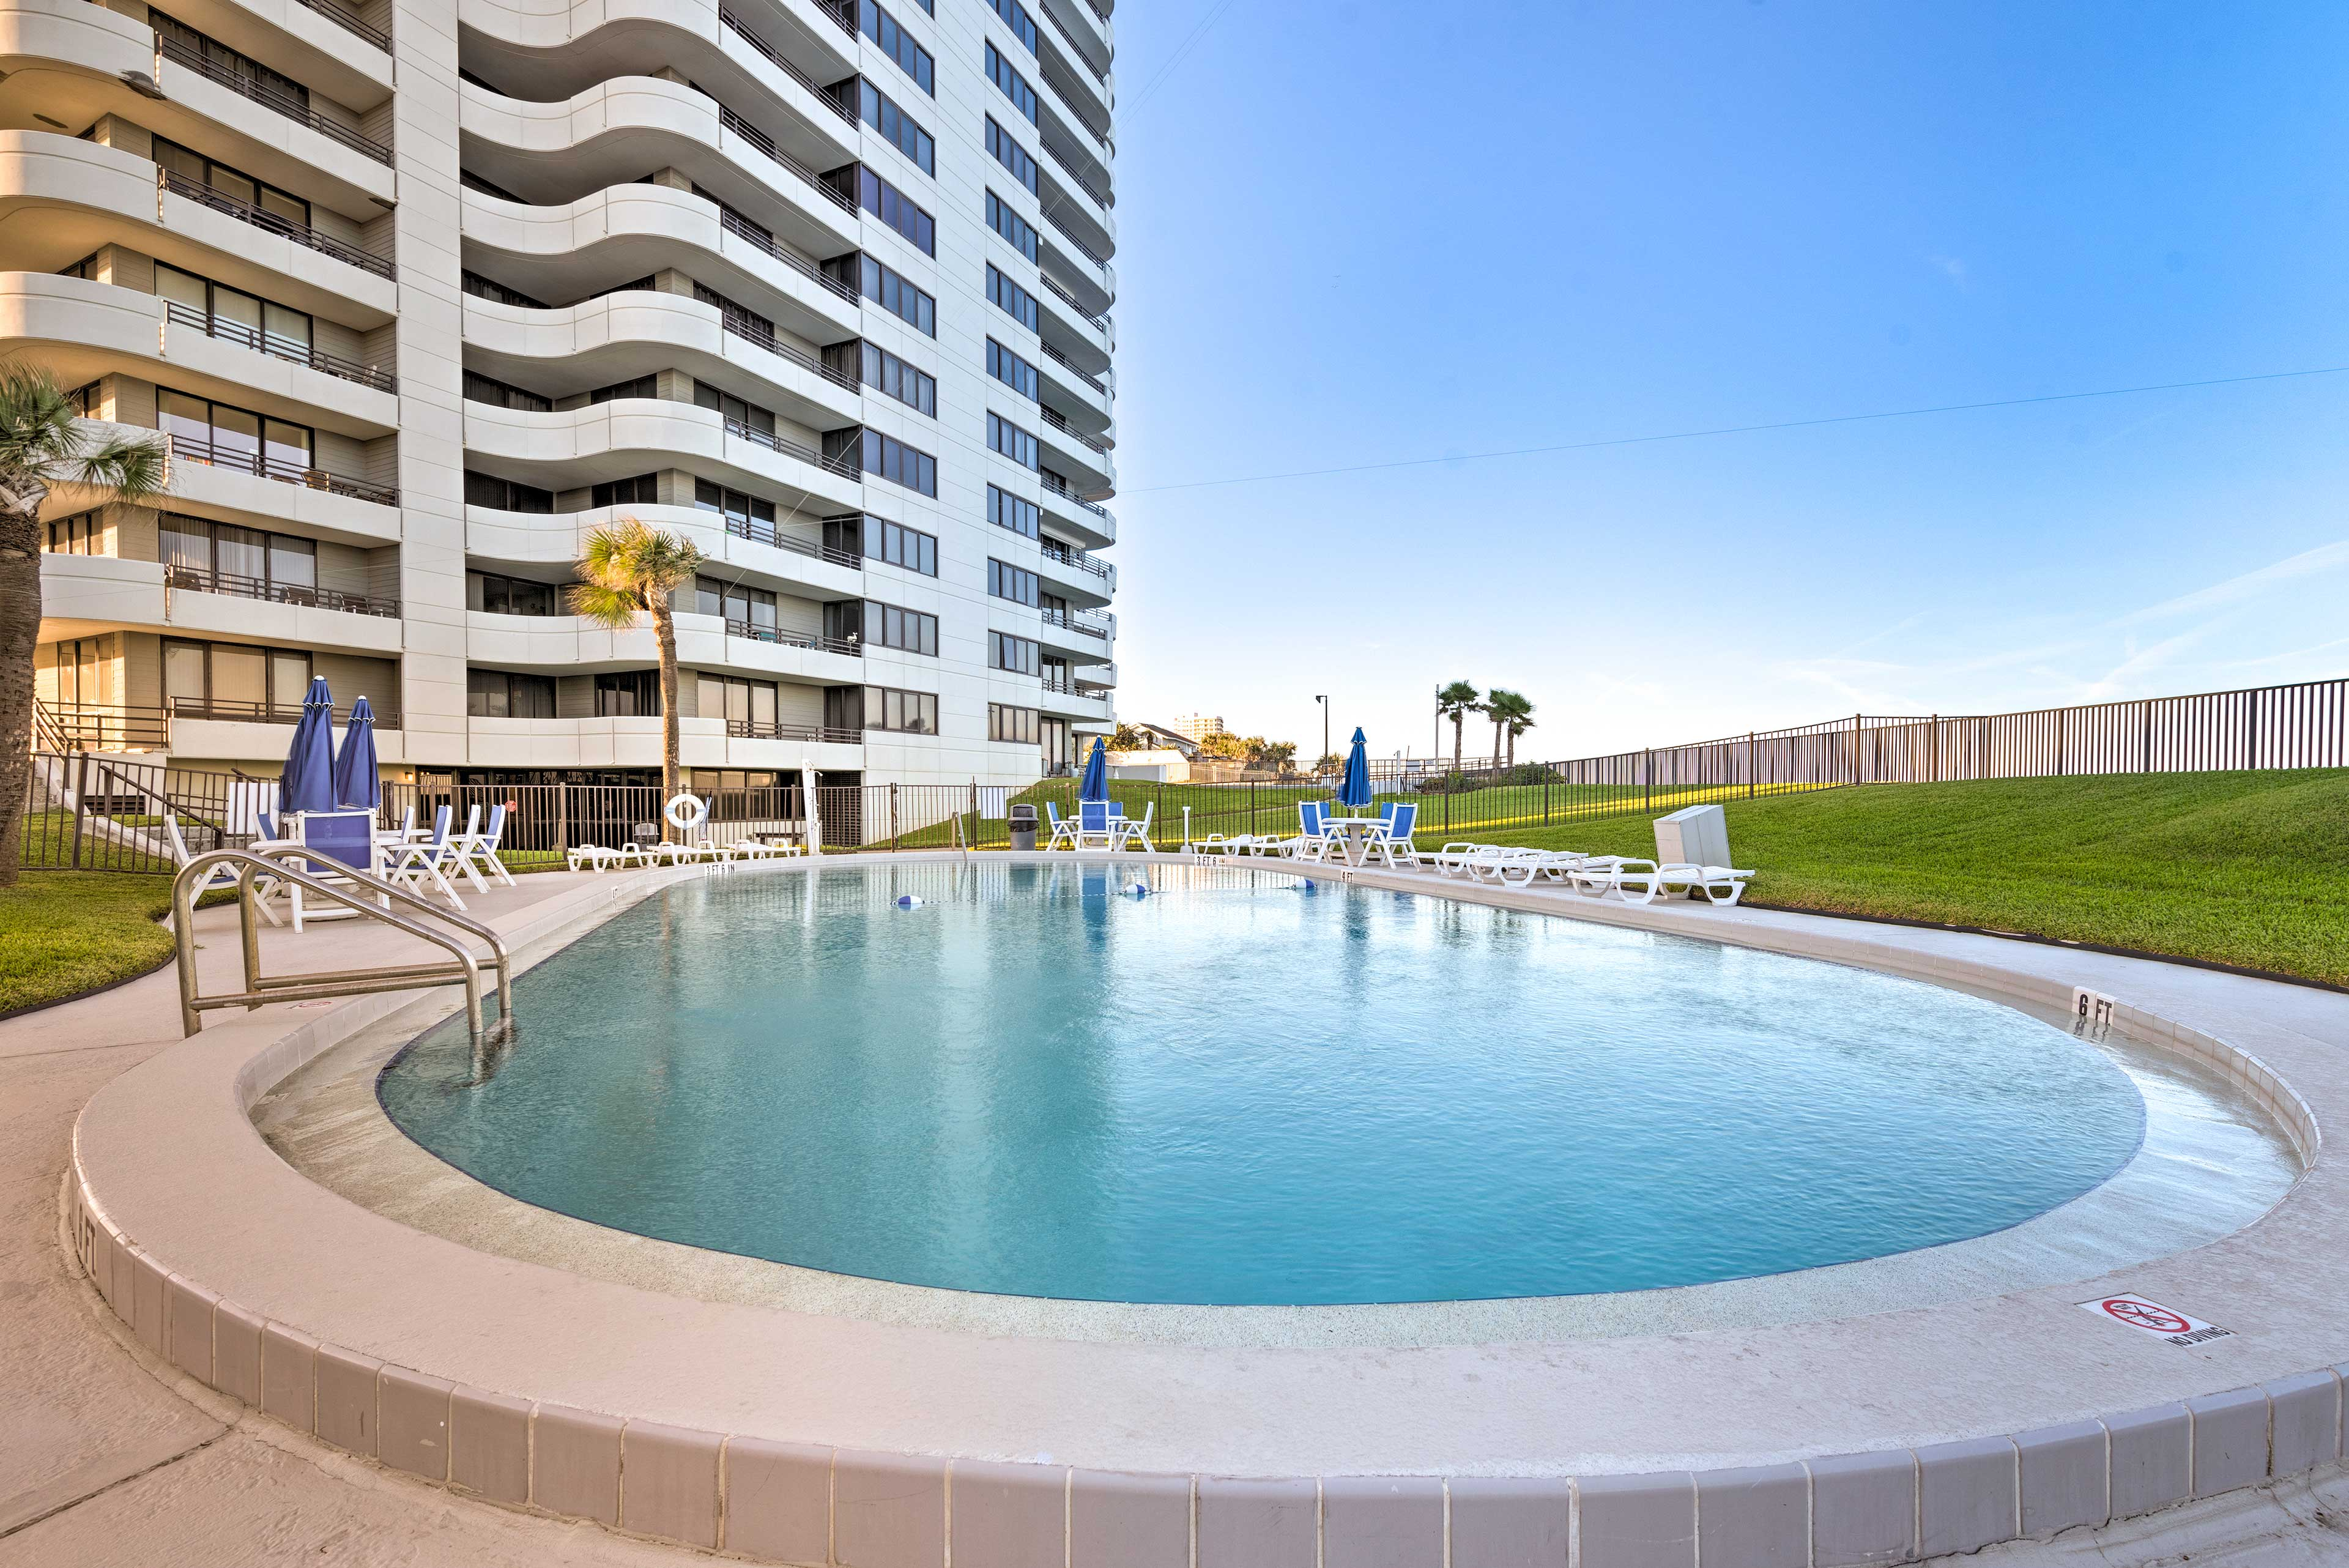 Dive into your next sunny vacation in this Horizons Condos community pool!